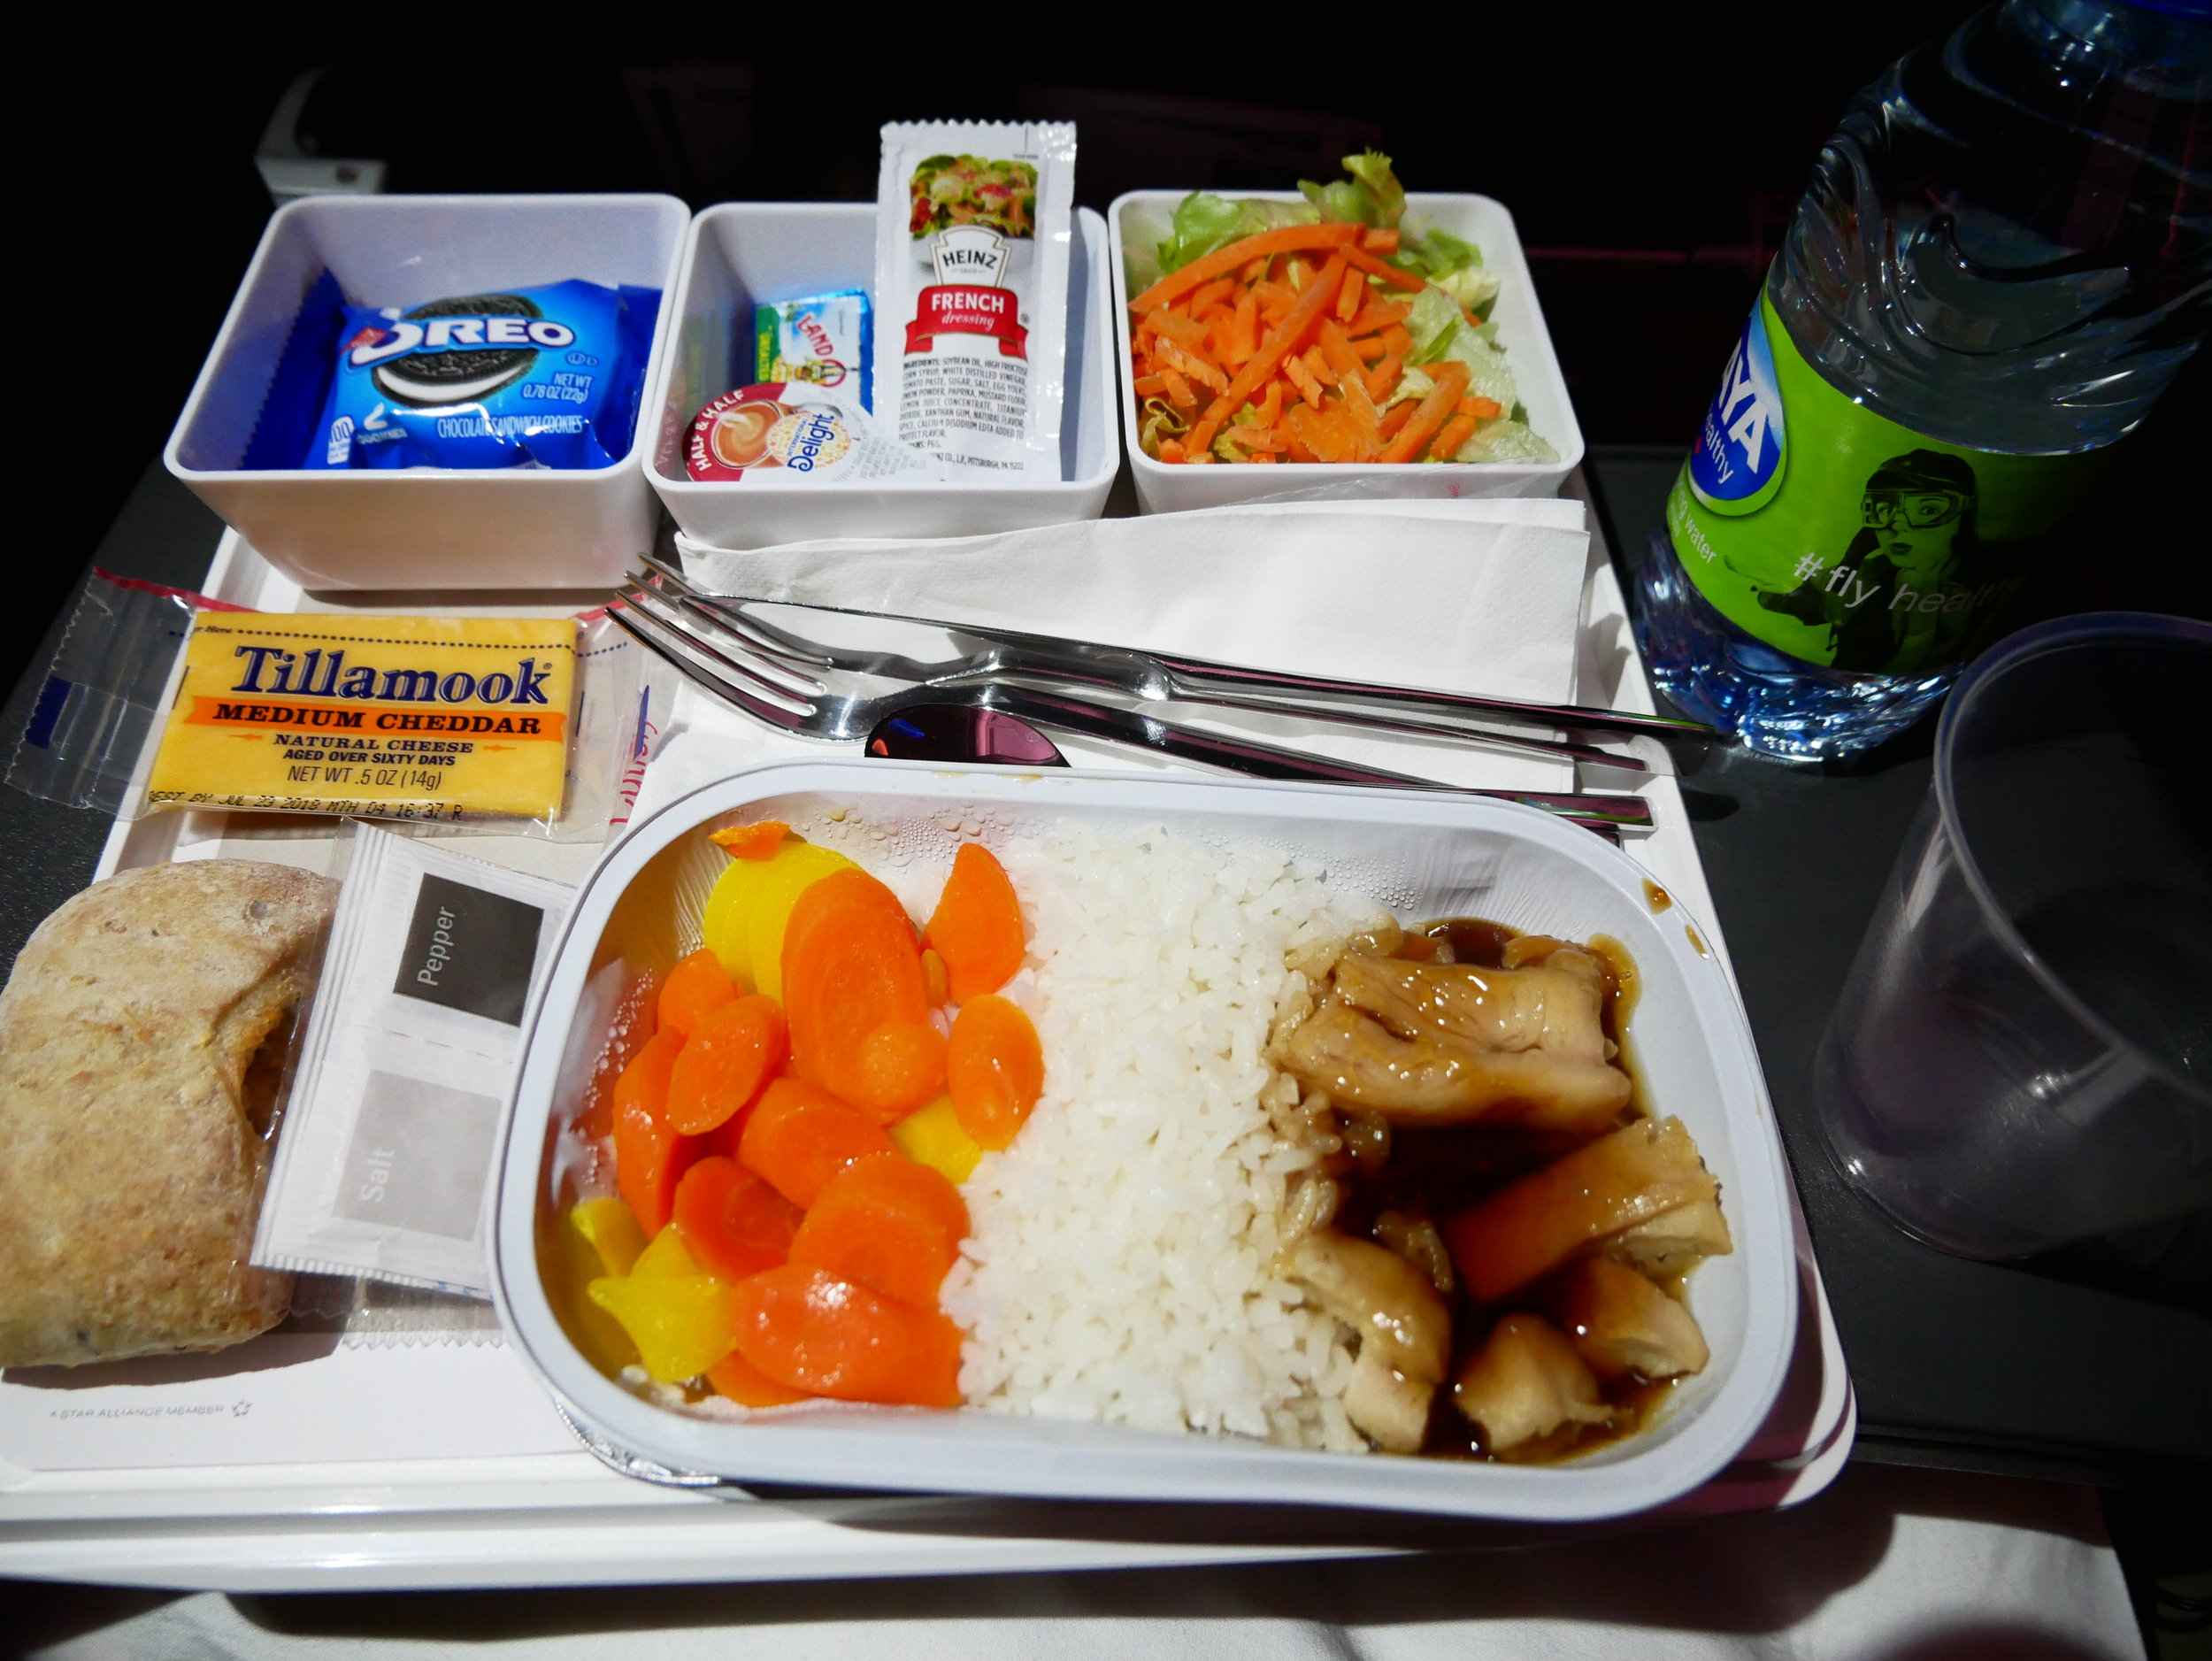 I wouldn't have imagined it, but I do think United Economy catering is superior.